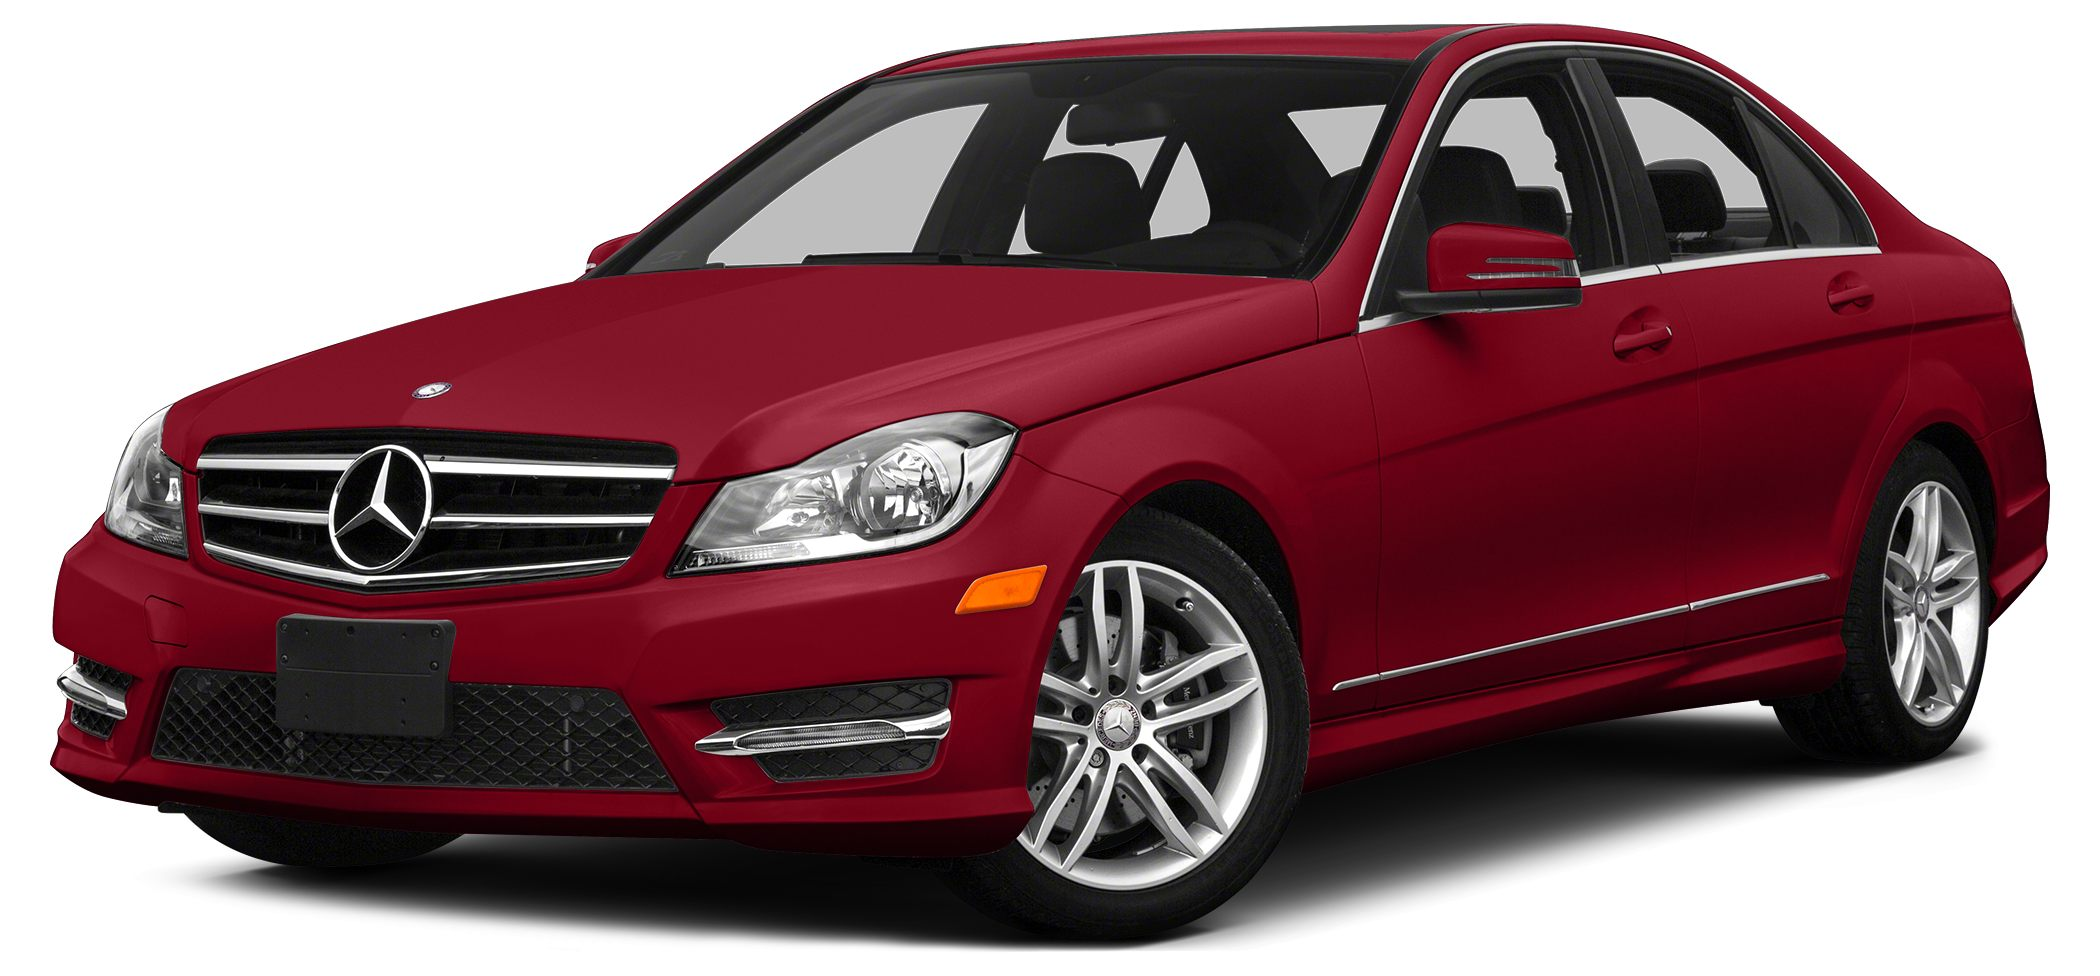 2014 MERCEDES C-Class C300 Vehicle Detailed Recent Oil Change and Passed Dealer Inspection Fun